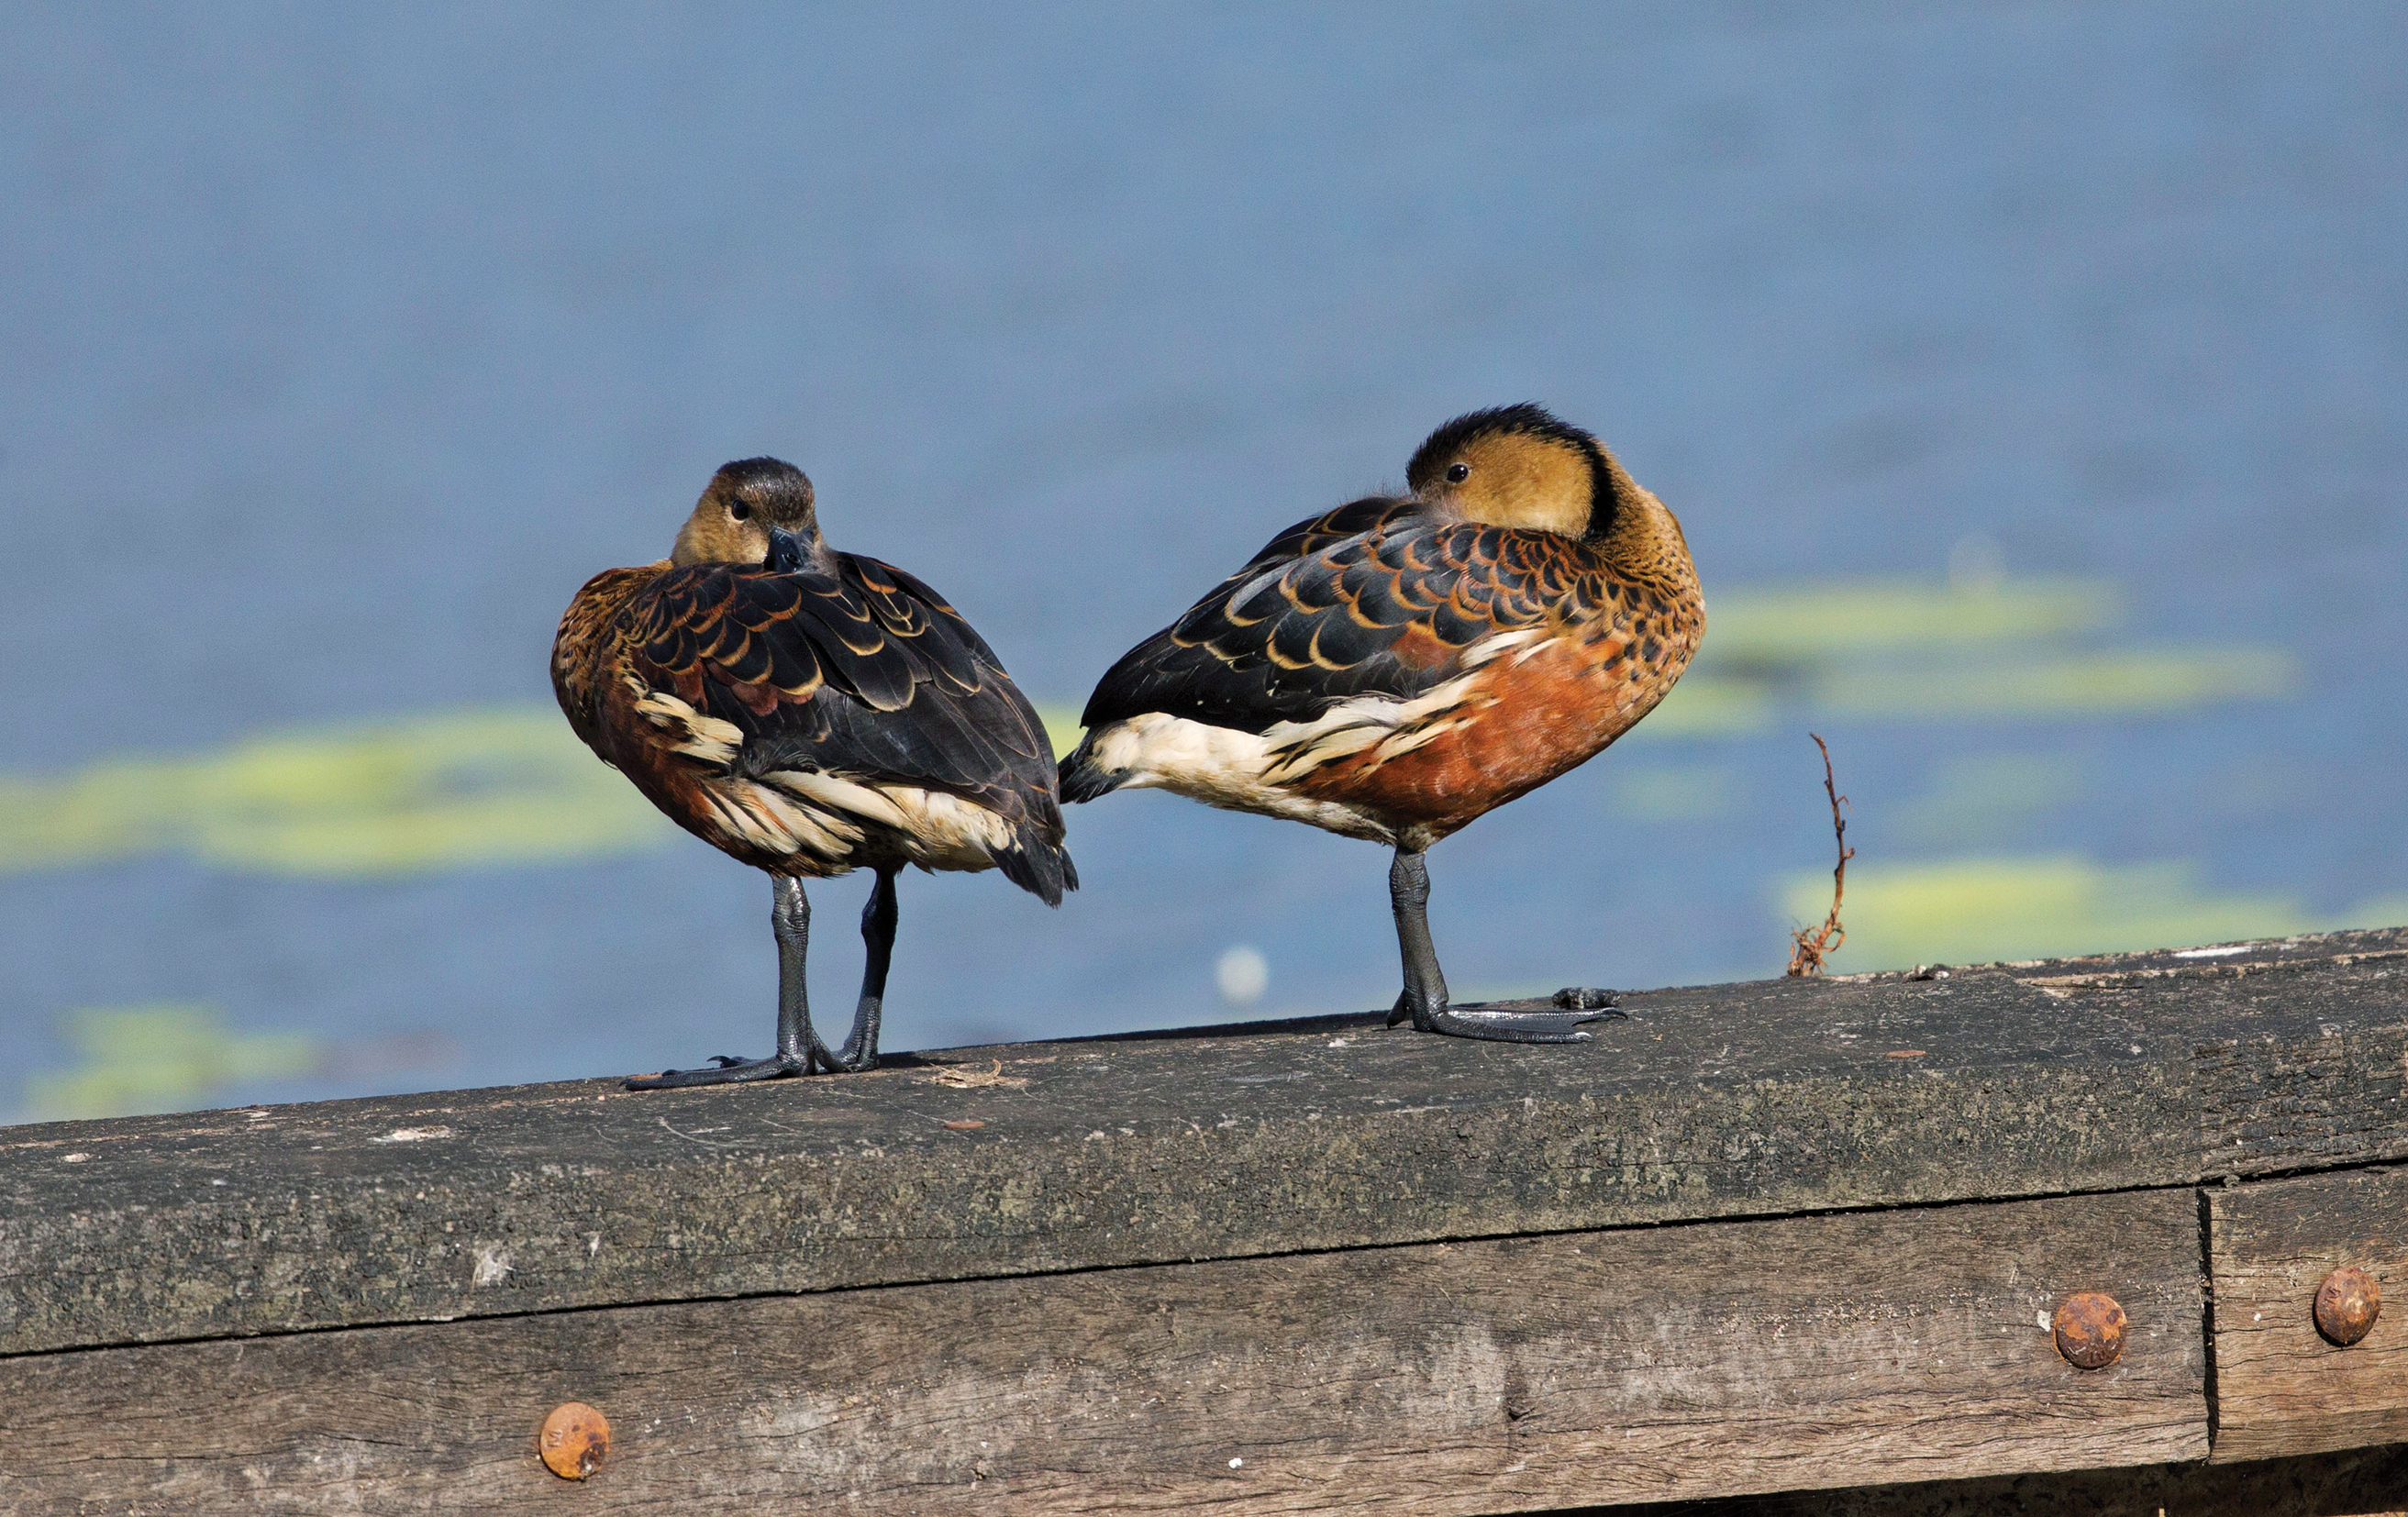 Two ducks standing on a wall.